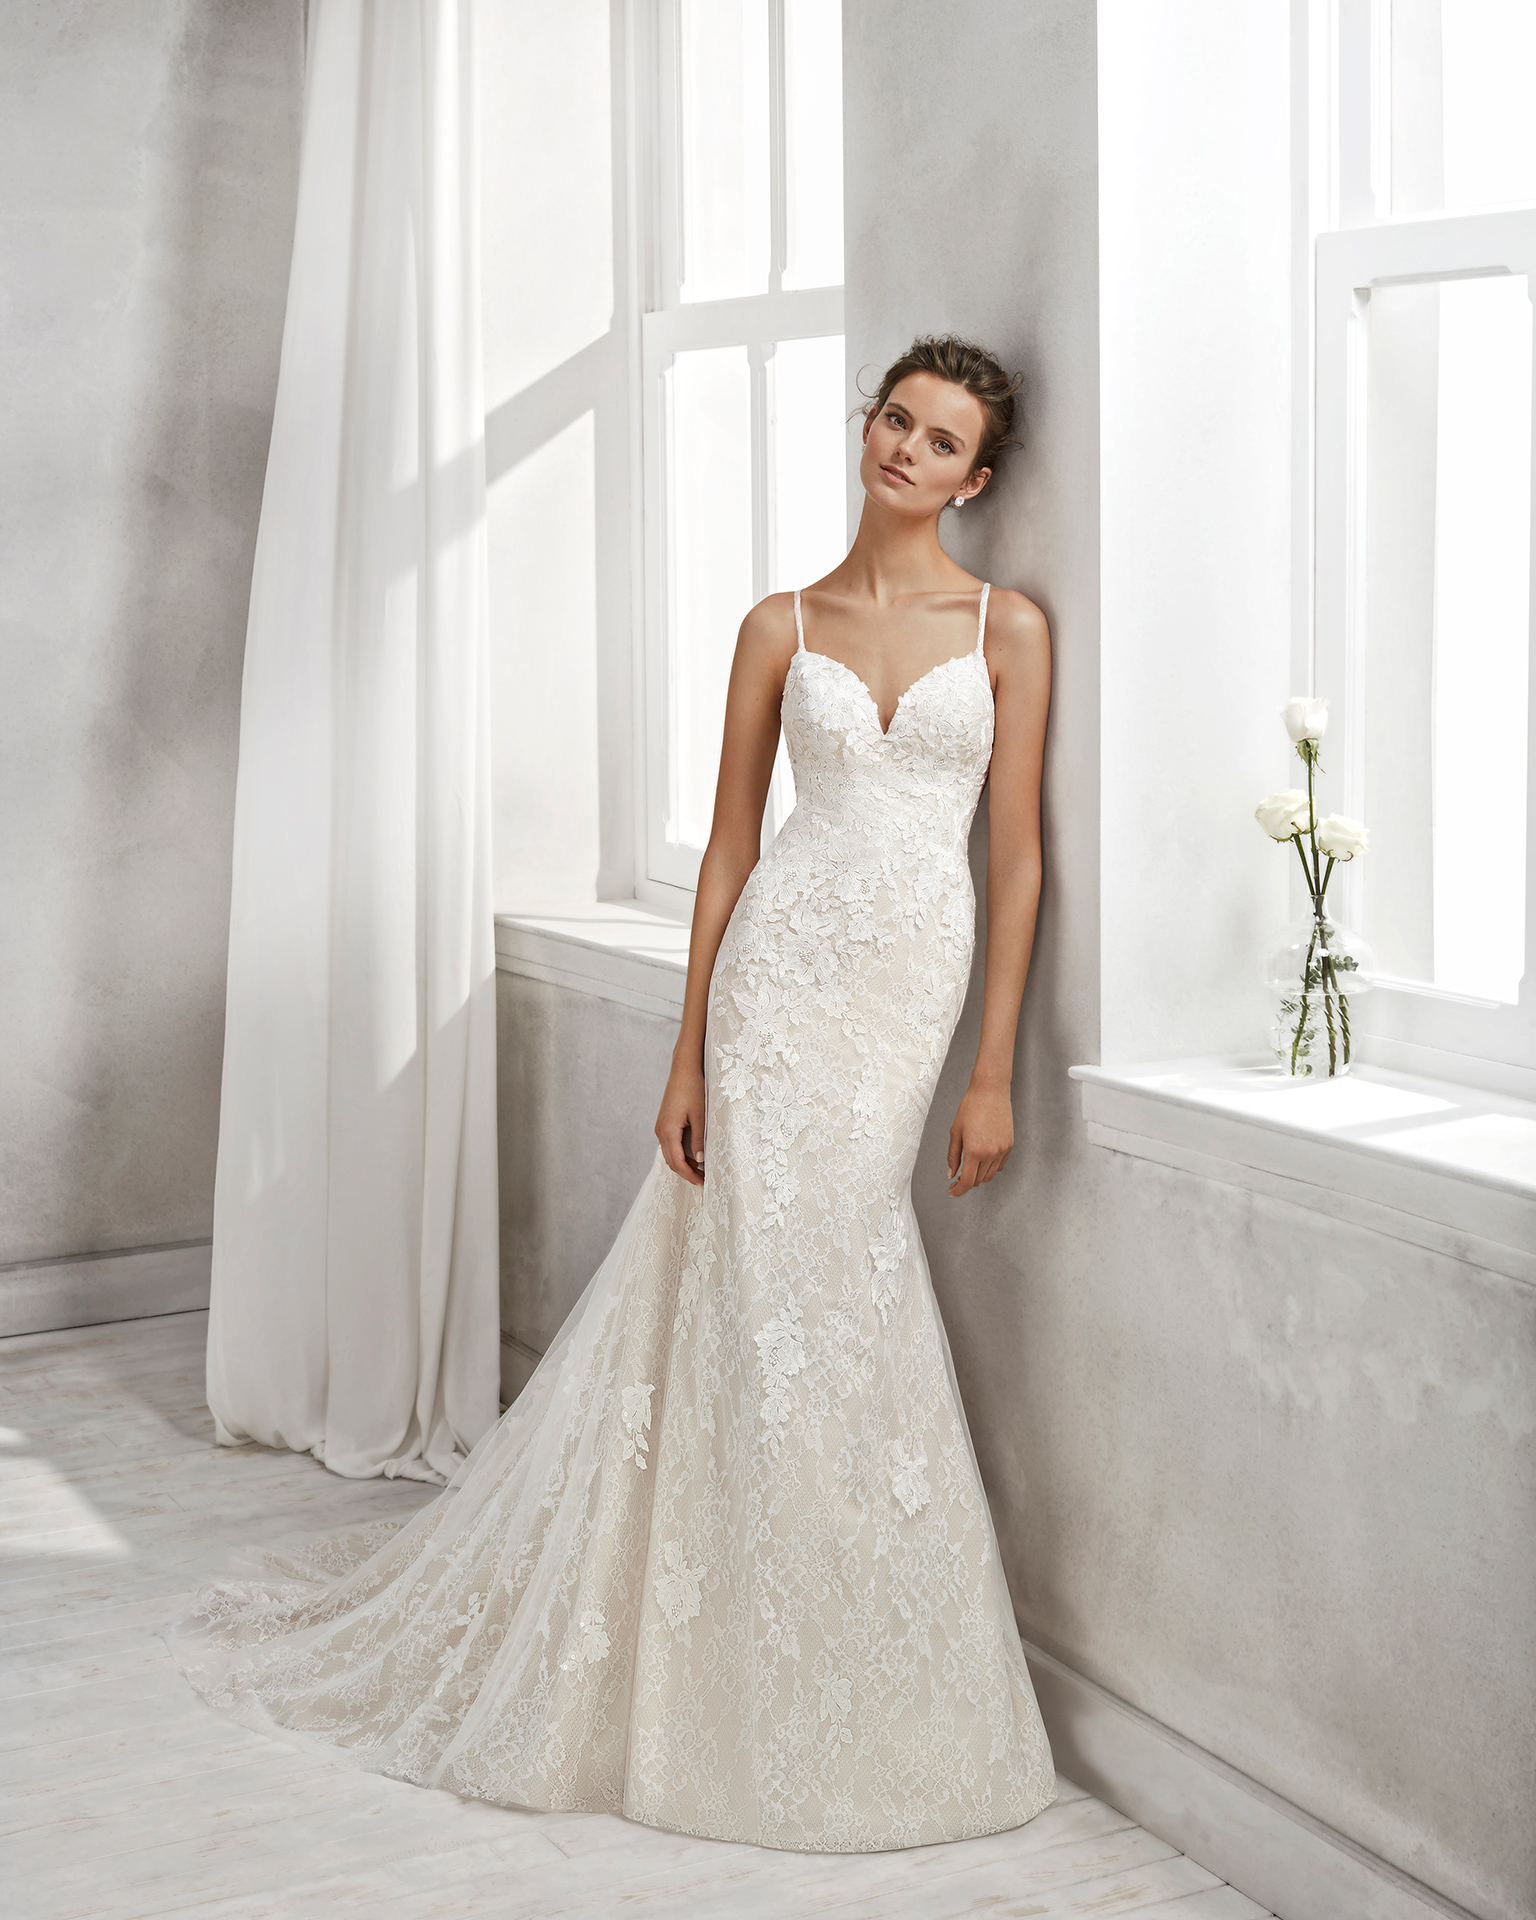 Mermaid-style beaded lace wedding dress with sweetheart neckline and tattoo-effect back, in nude and natural.